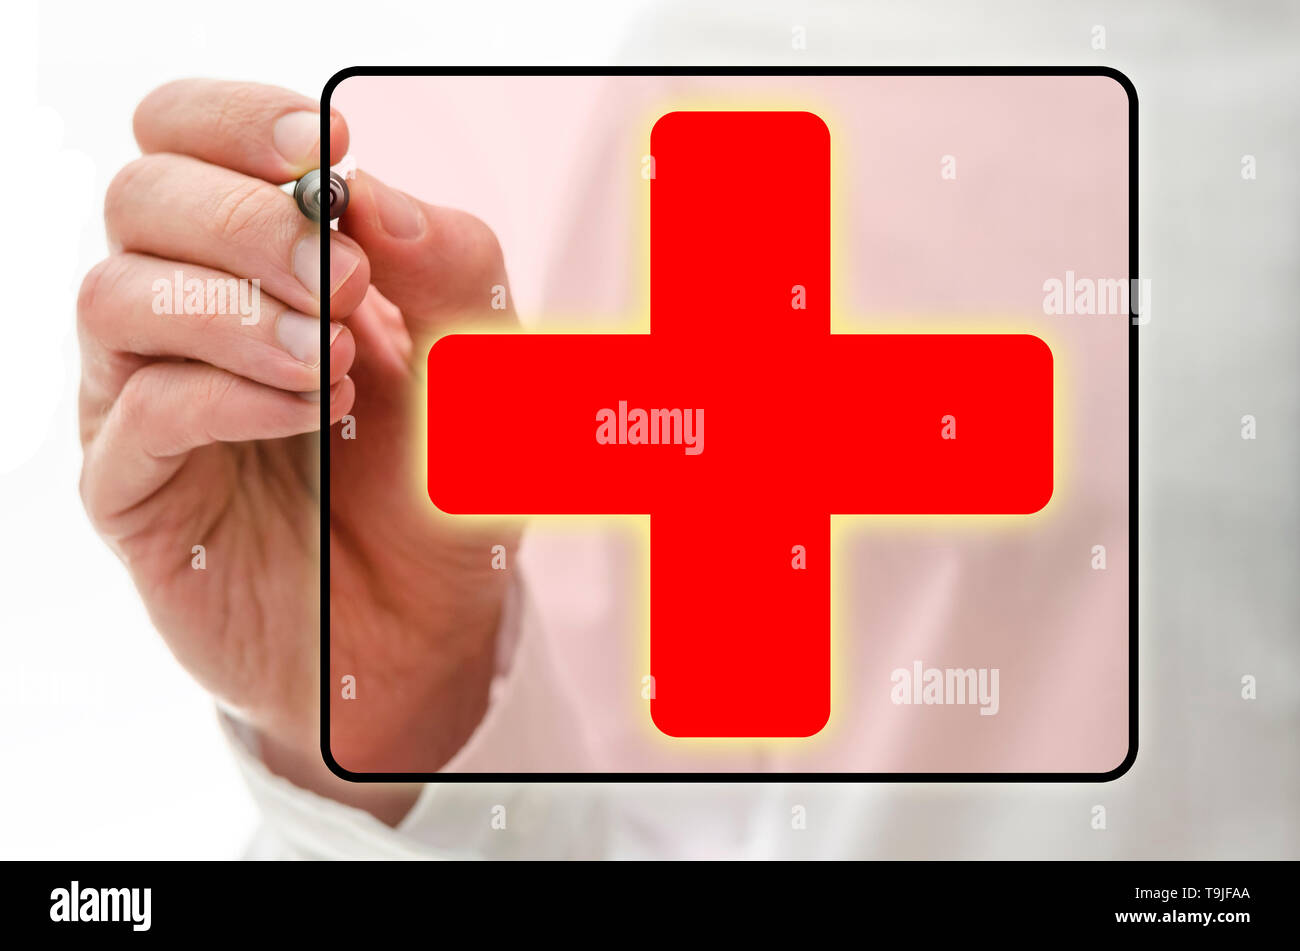 Red cross on virtual screen. Medical care concept. - Stock Image